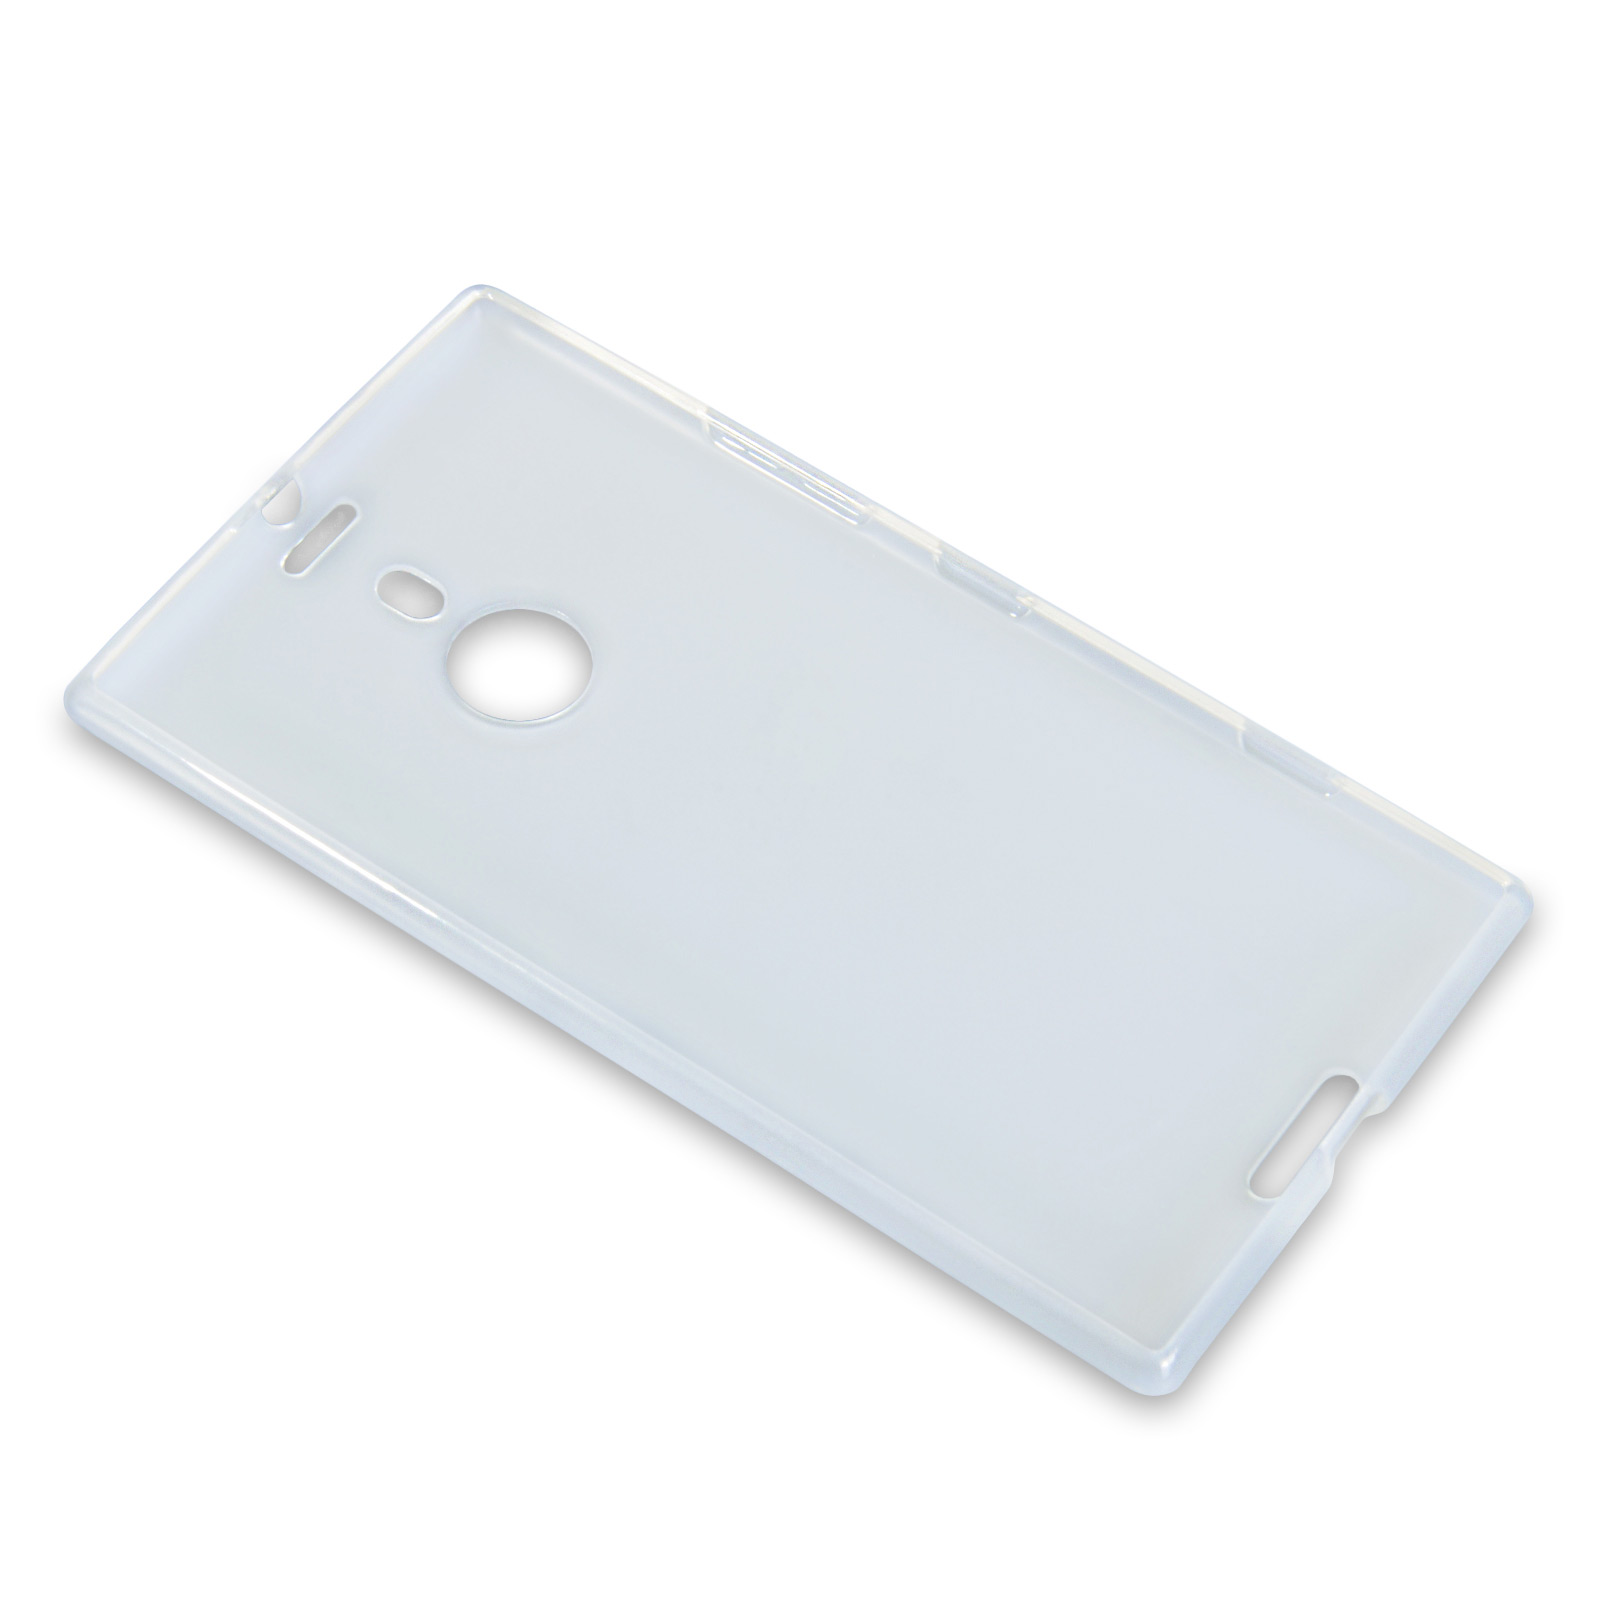 YouSave Accessories Nokia Lumia 1520 Silicone Gel Case - Clear